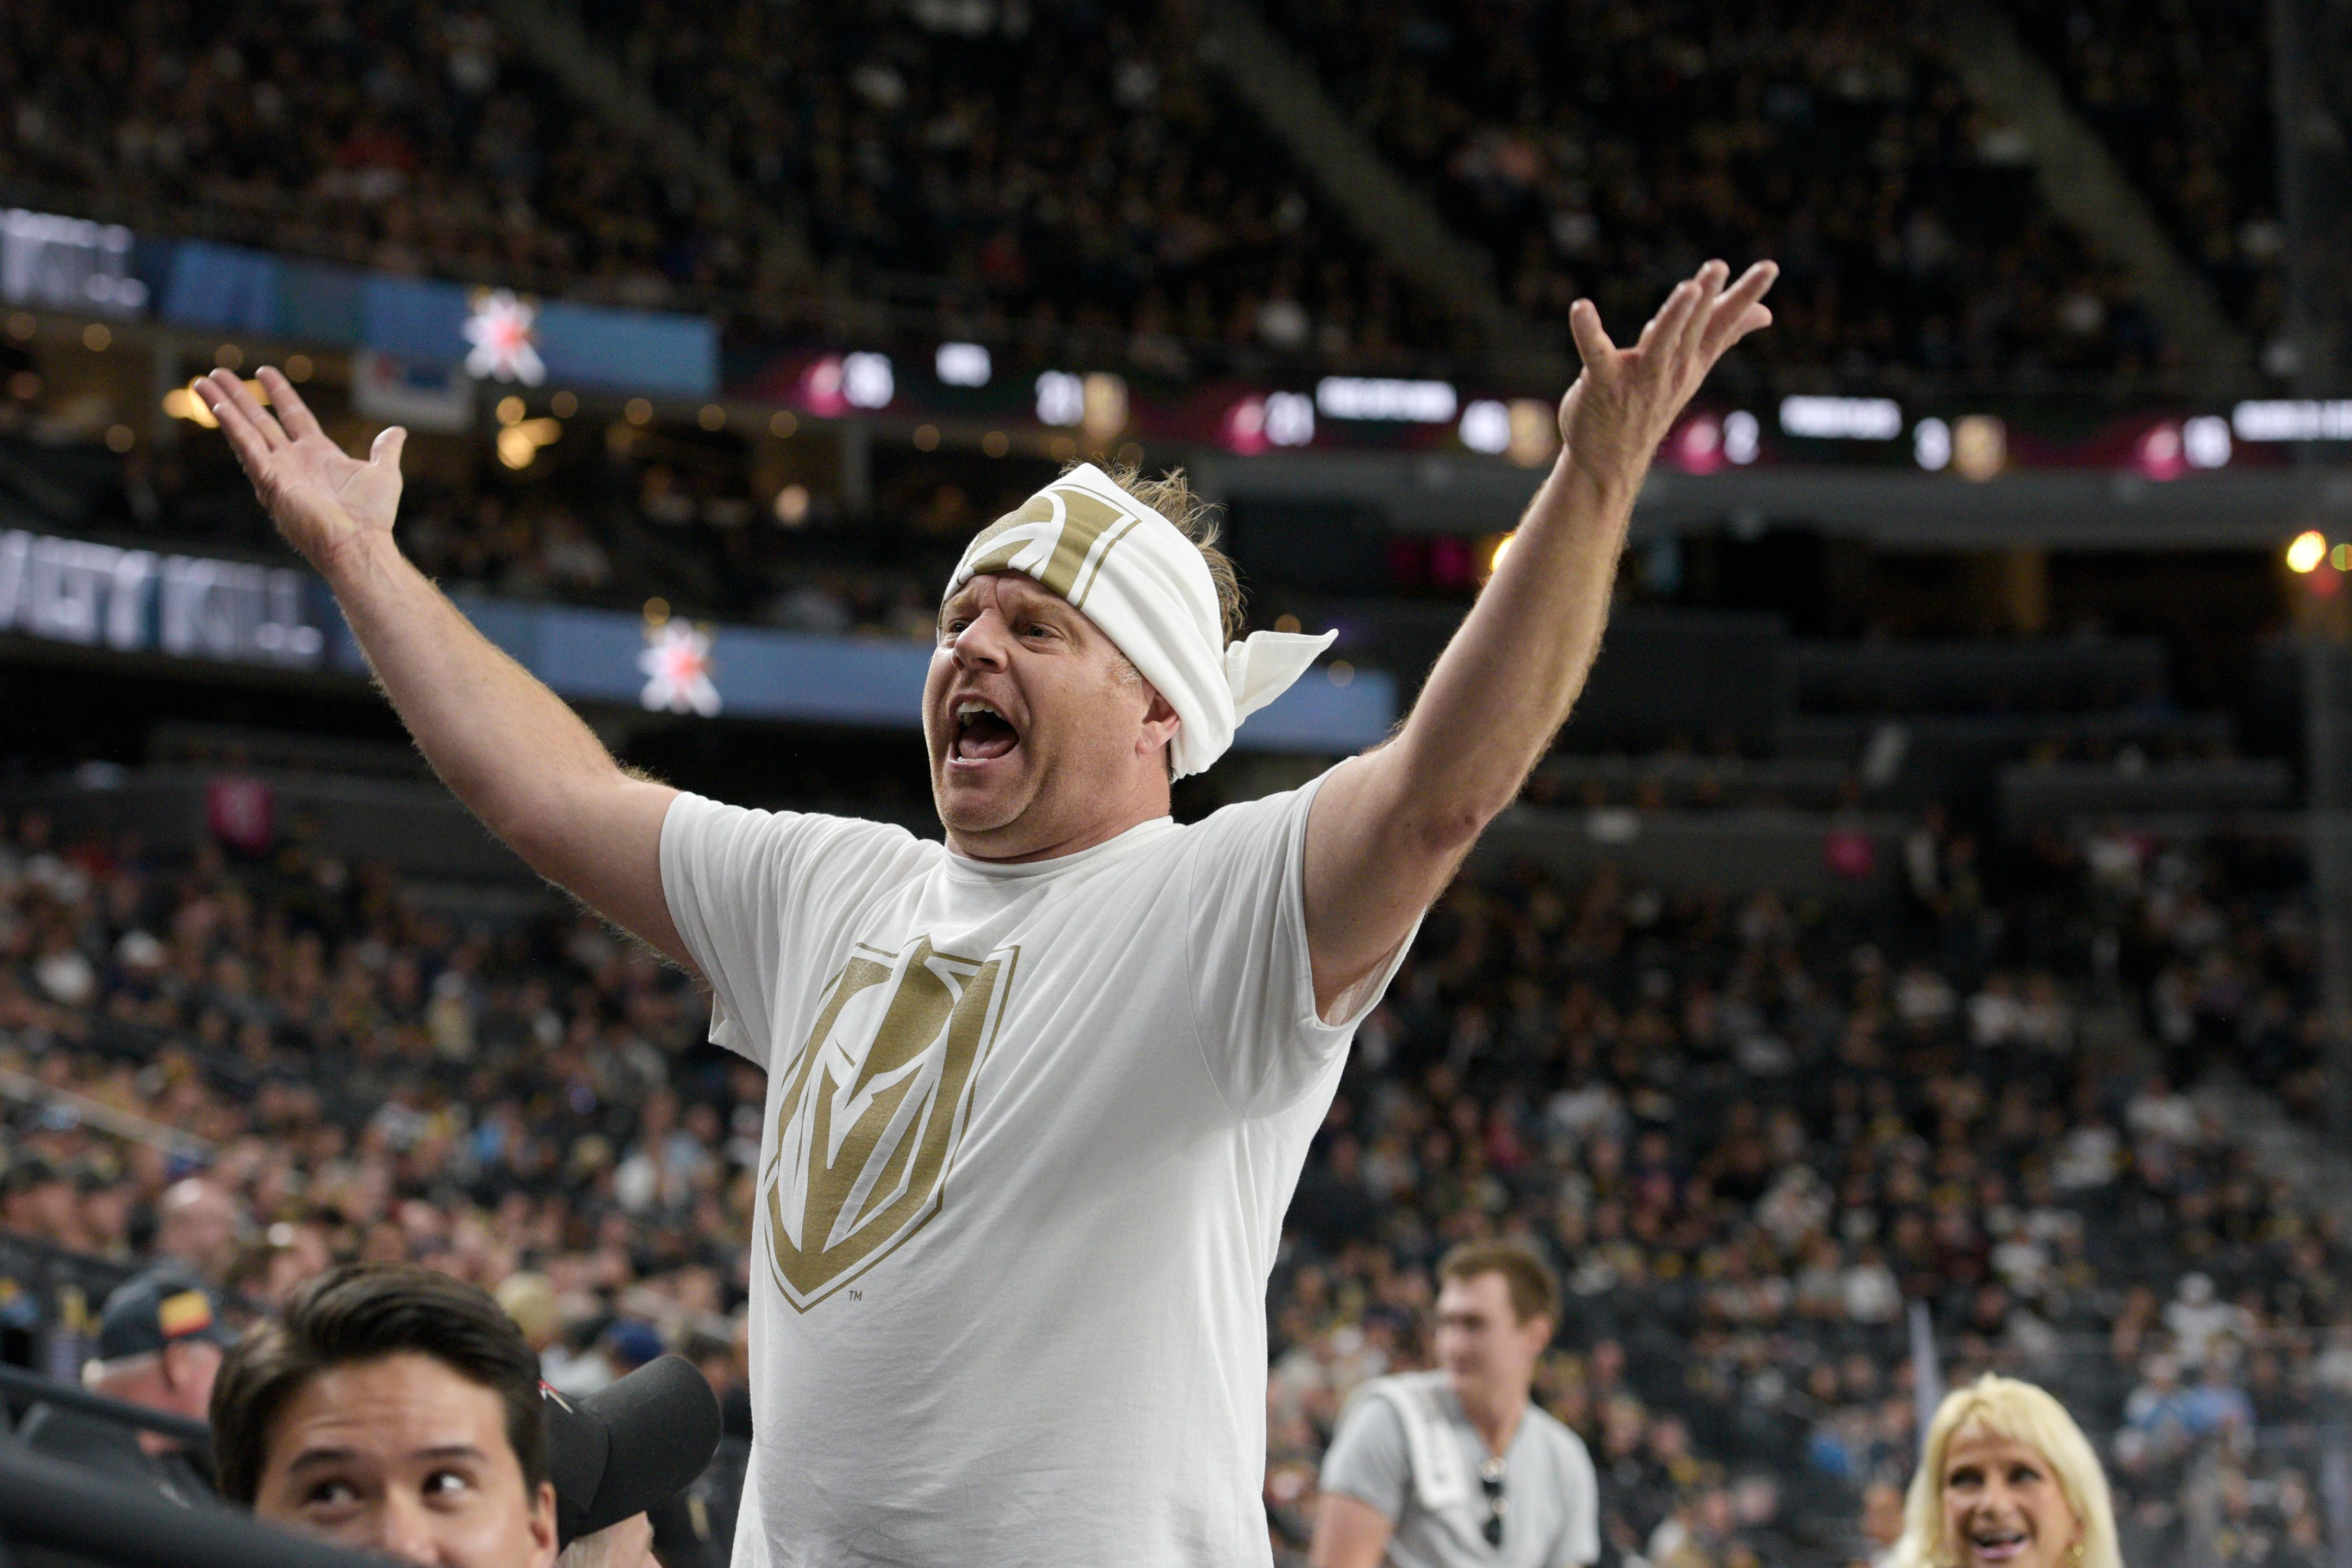 A member of the Las Vegas Golden Knights promotions crew gets the crowd to stand up during the Knights home opener Tuesday, Oct. 10, 2017, at the T-Mobile Arena. The Knights won 5-2 to extend their winning streak to 3-0. CREDIT: Sam Morris/Las Vegas News Bureau